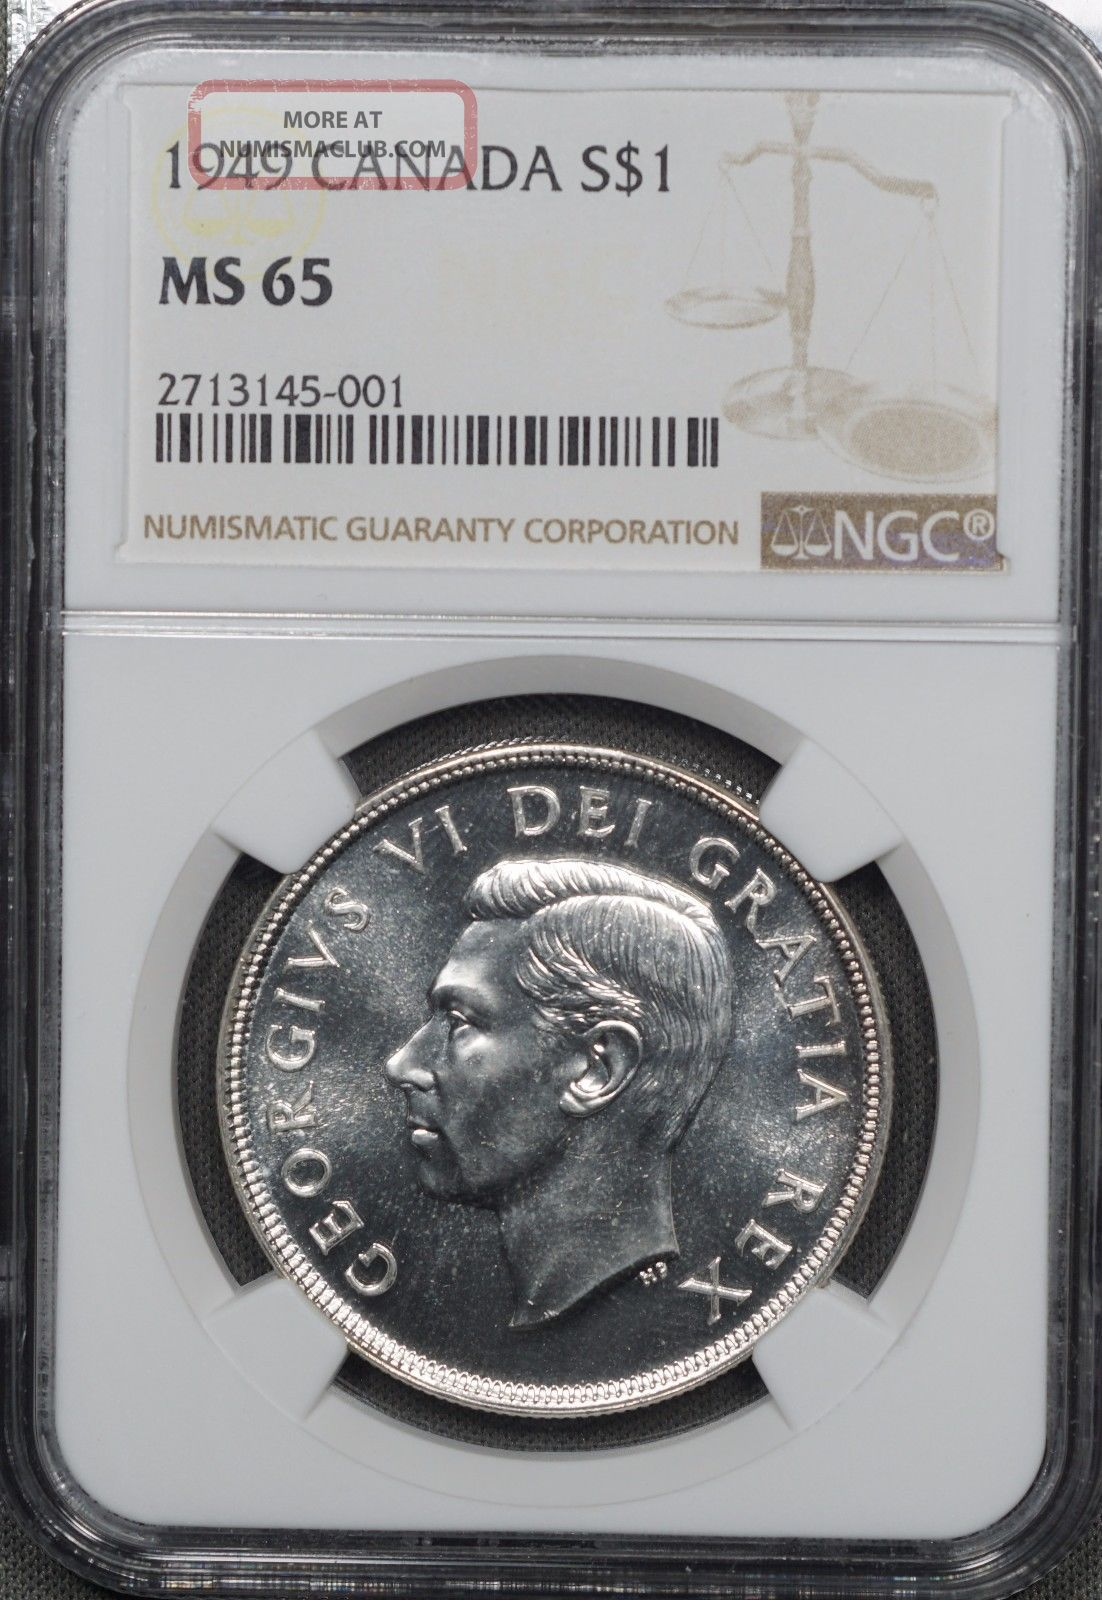 1949 Canada Silver $1,  Ngc Ms65,  Stunning White Gem W/ Prooflike Appearance Km47 Coins: Canada photo